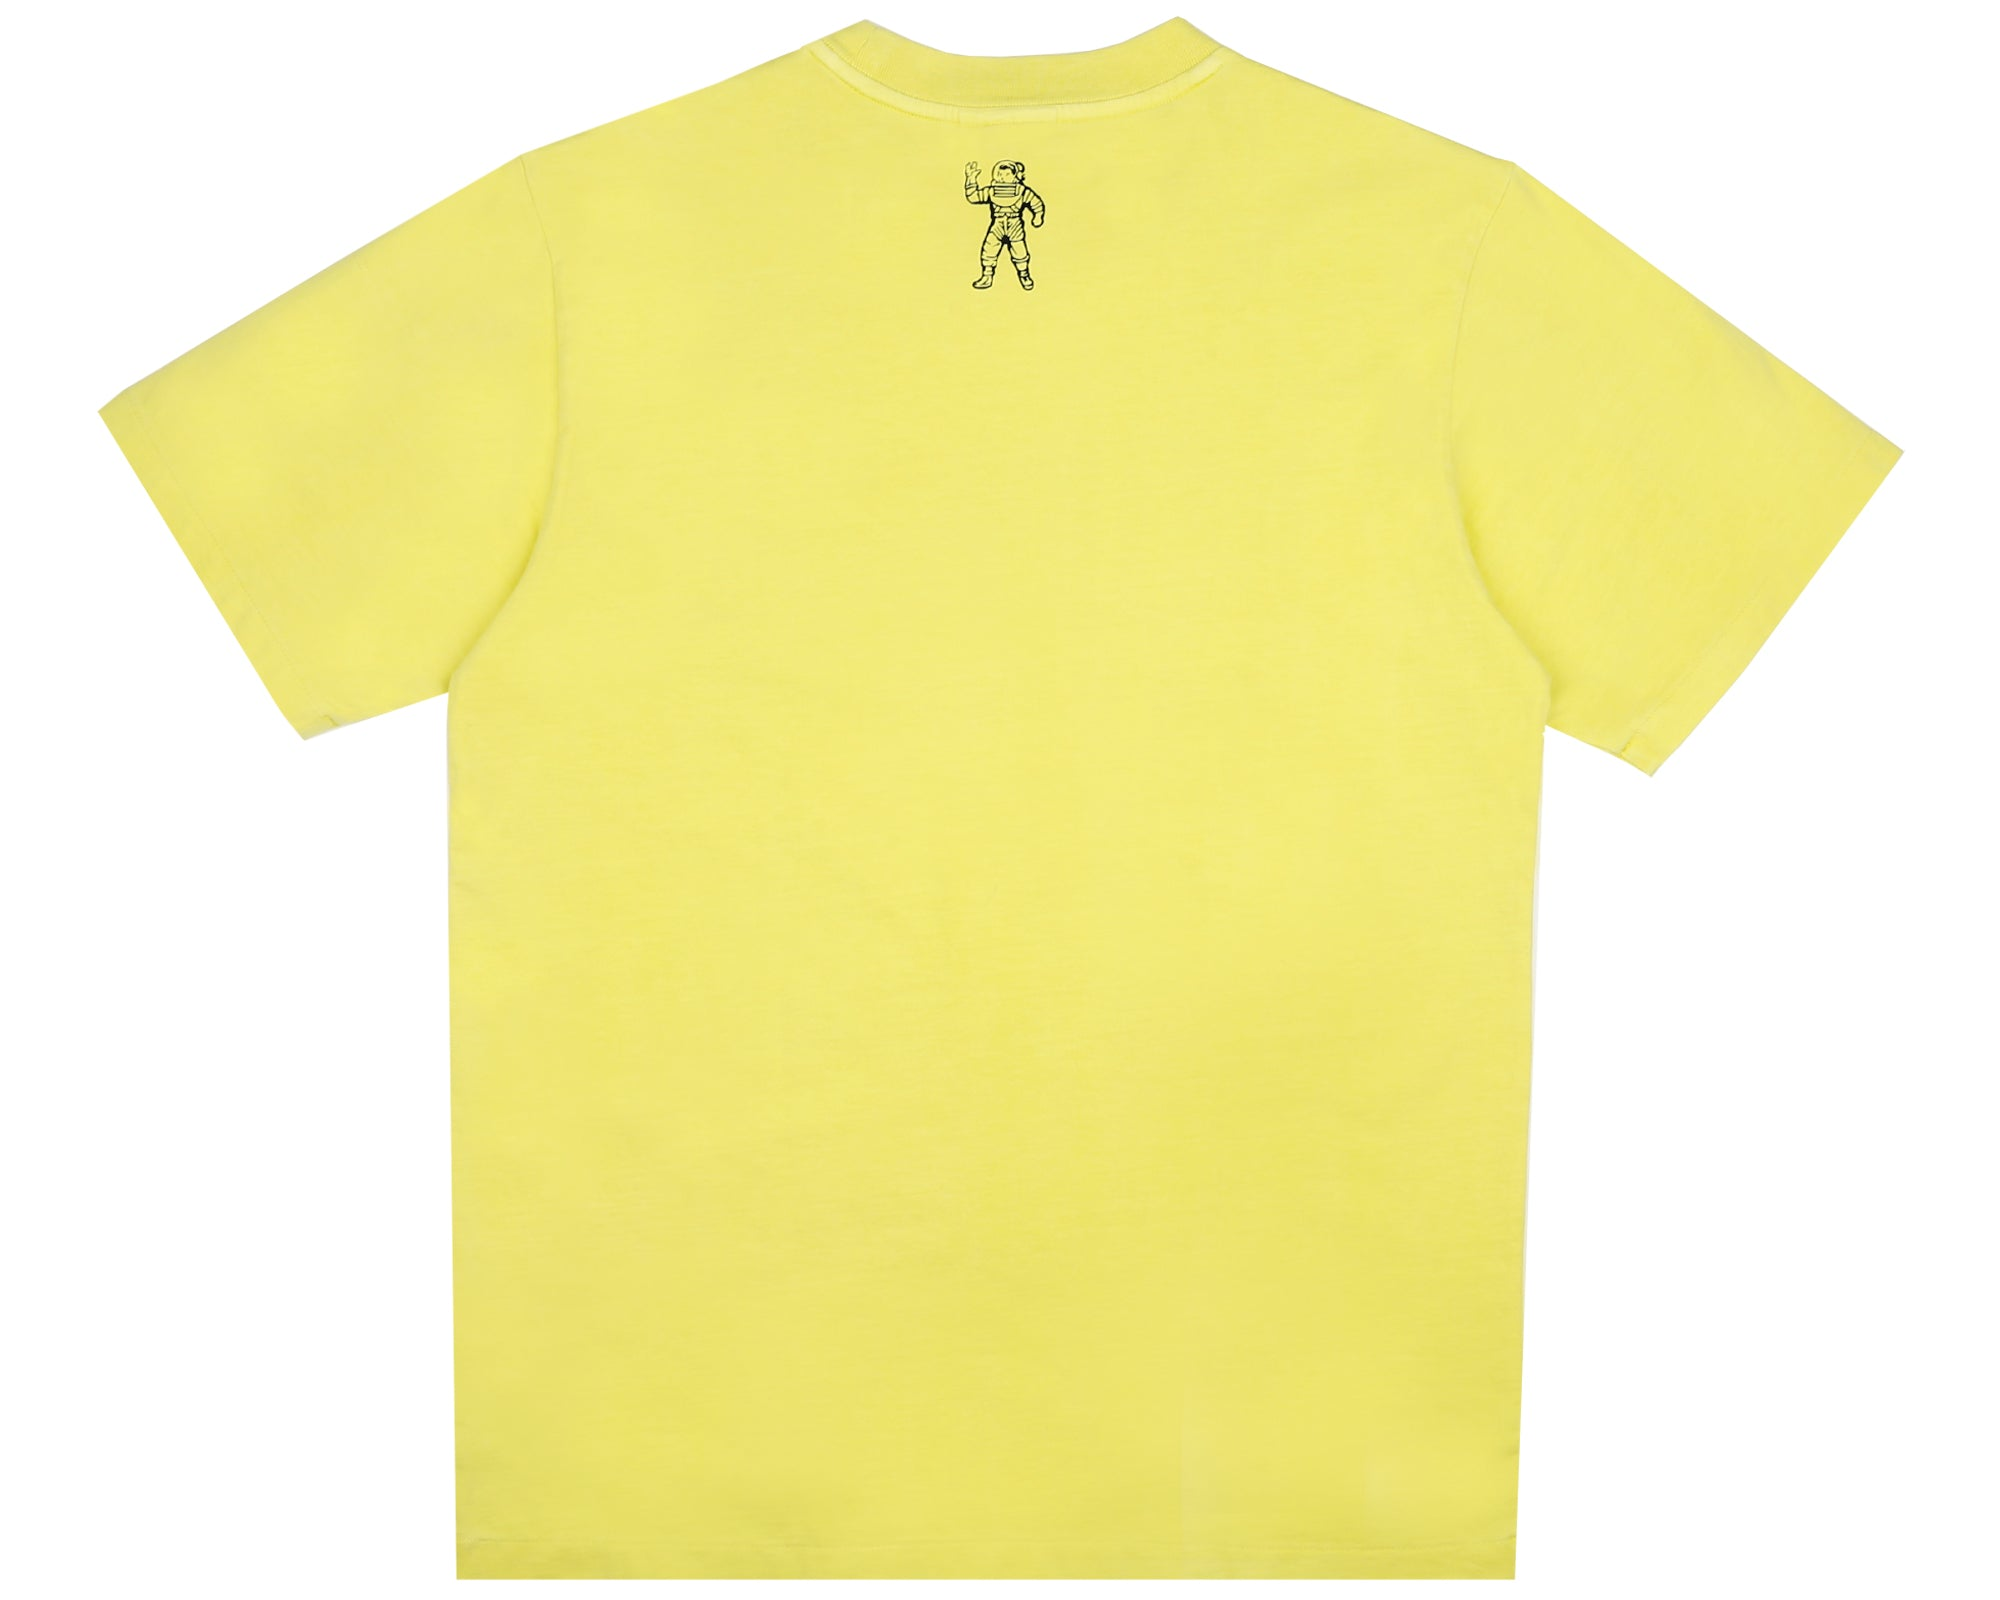 PIGMENT DYED FISH CAMO T-SHIRT - YELLOW